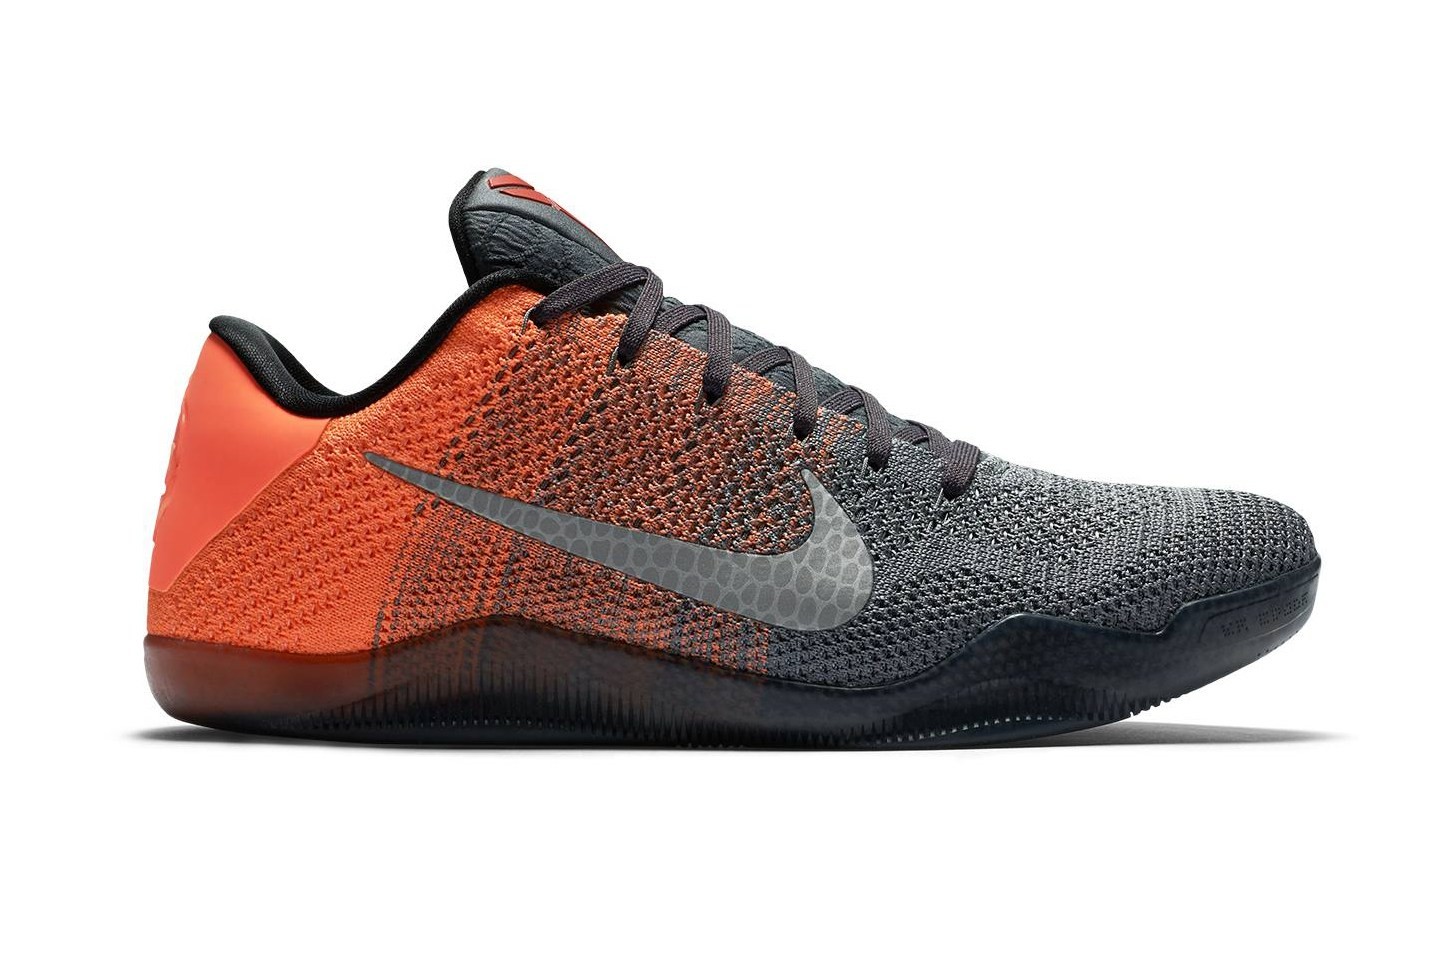 8fb58f81dba9 nike kobe 11 Archives - Page 3 of 5 - WearTesters